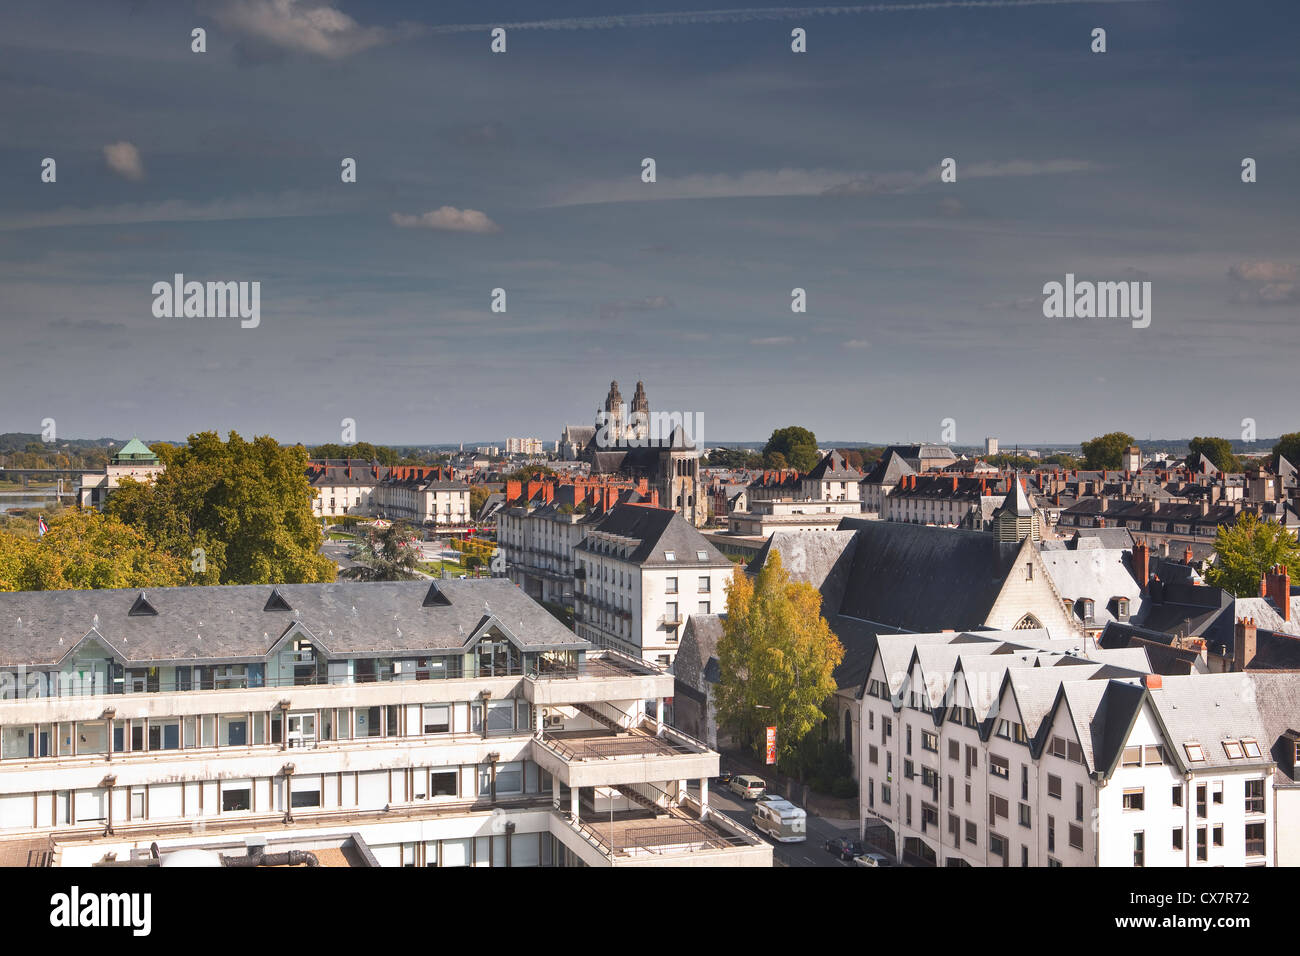 Looking across the rooftops of Tours in France. - Stock Image